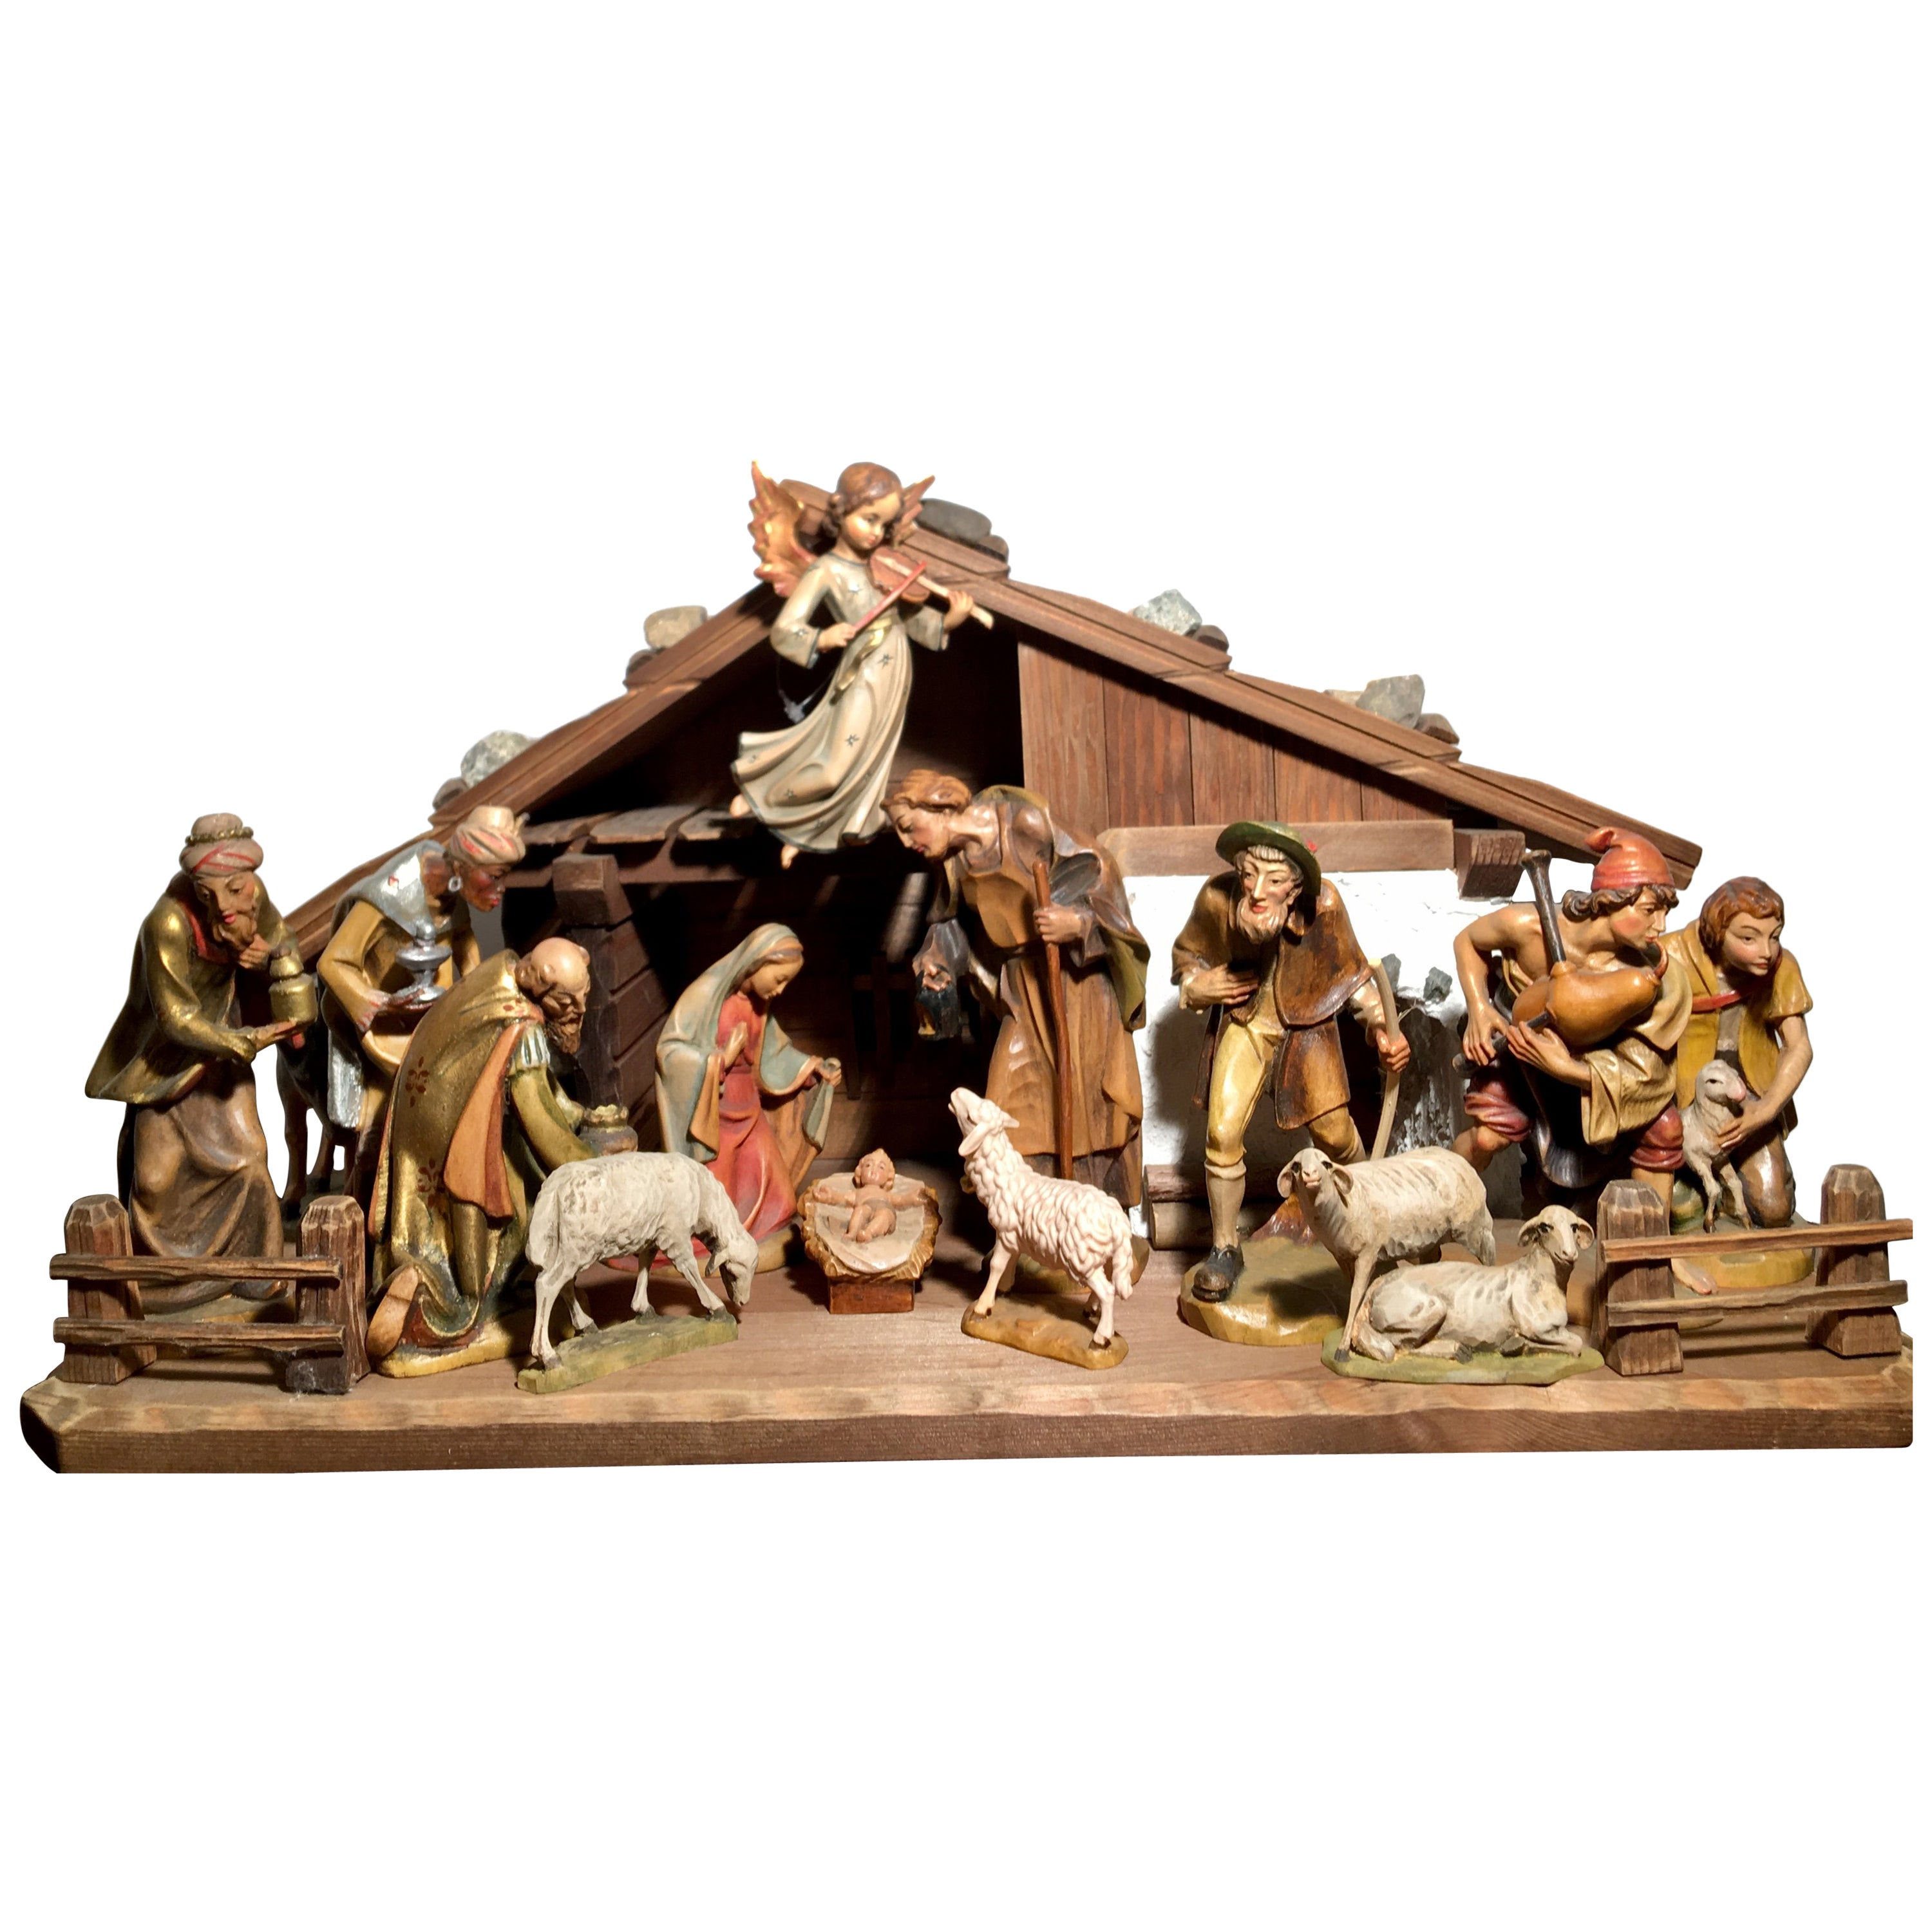 Finest Quality Italian Nativity Set Hand Carved Wood 16 Piece Oswald